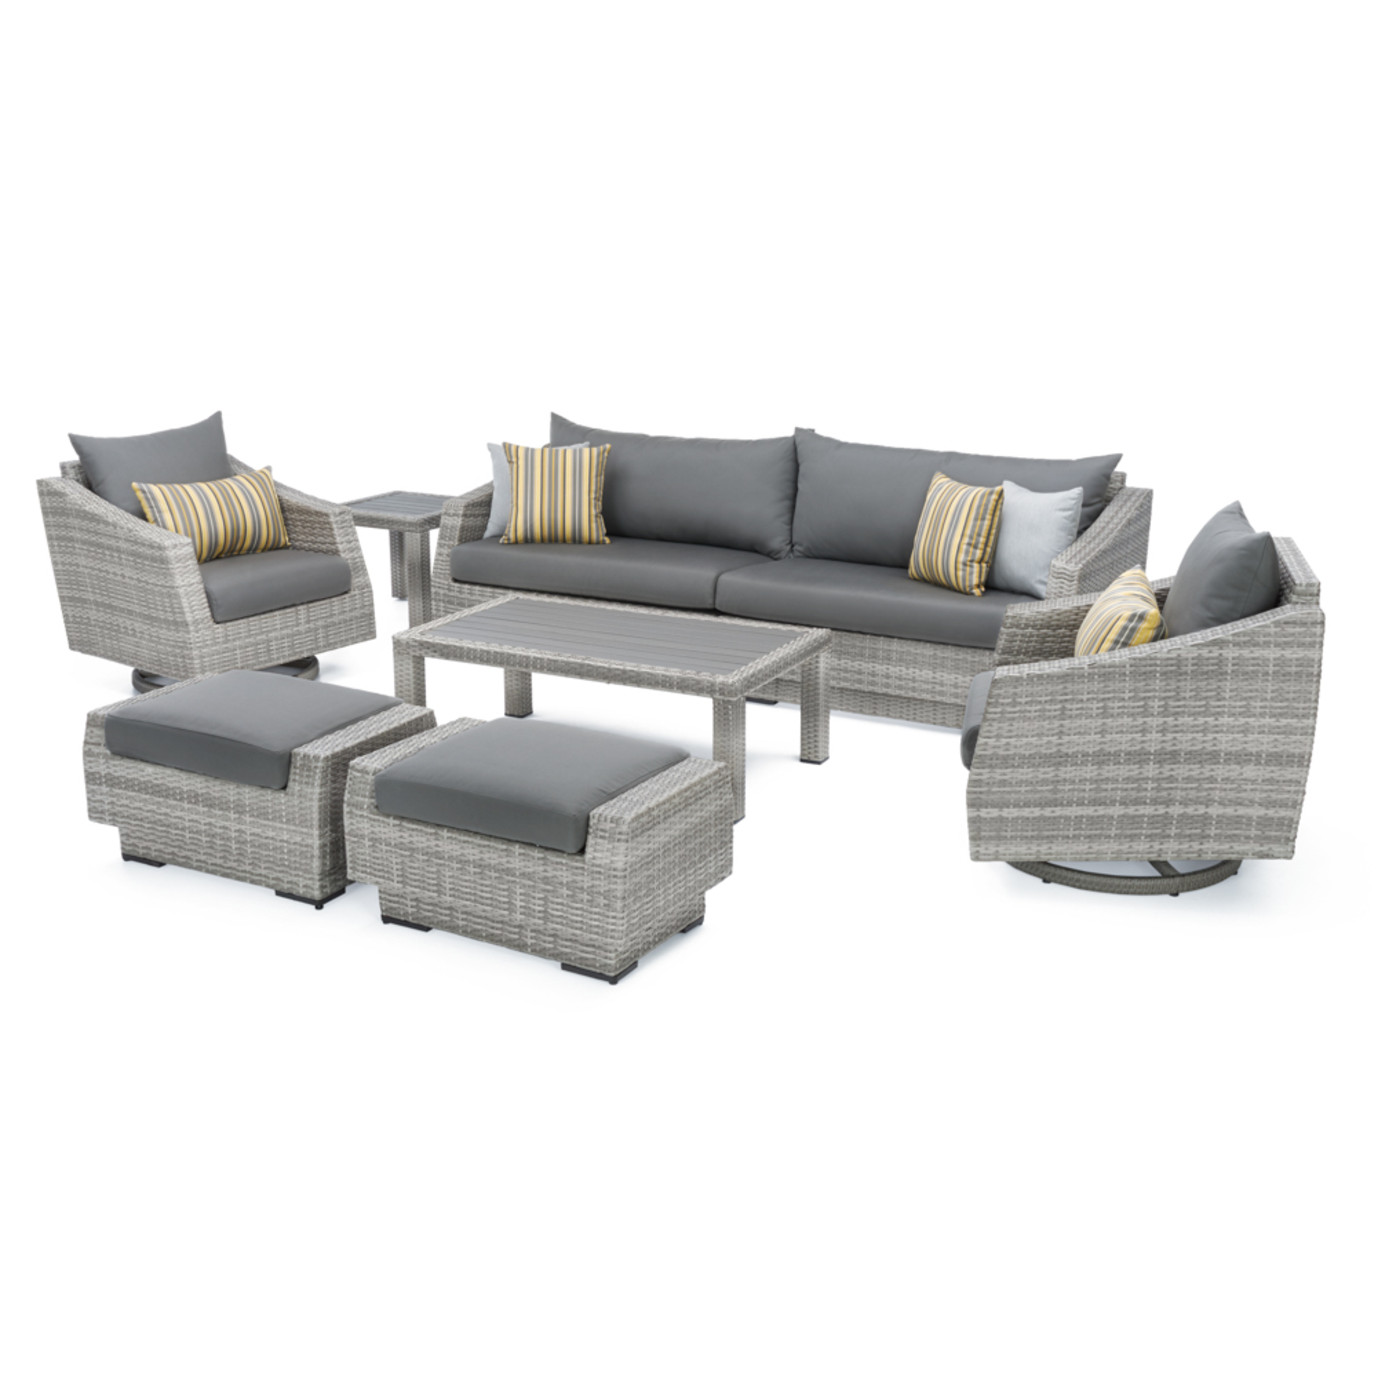 Cannes™ Deluxe 8pc Sofa & Club Chair Set - Charcoal Grey